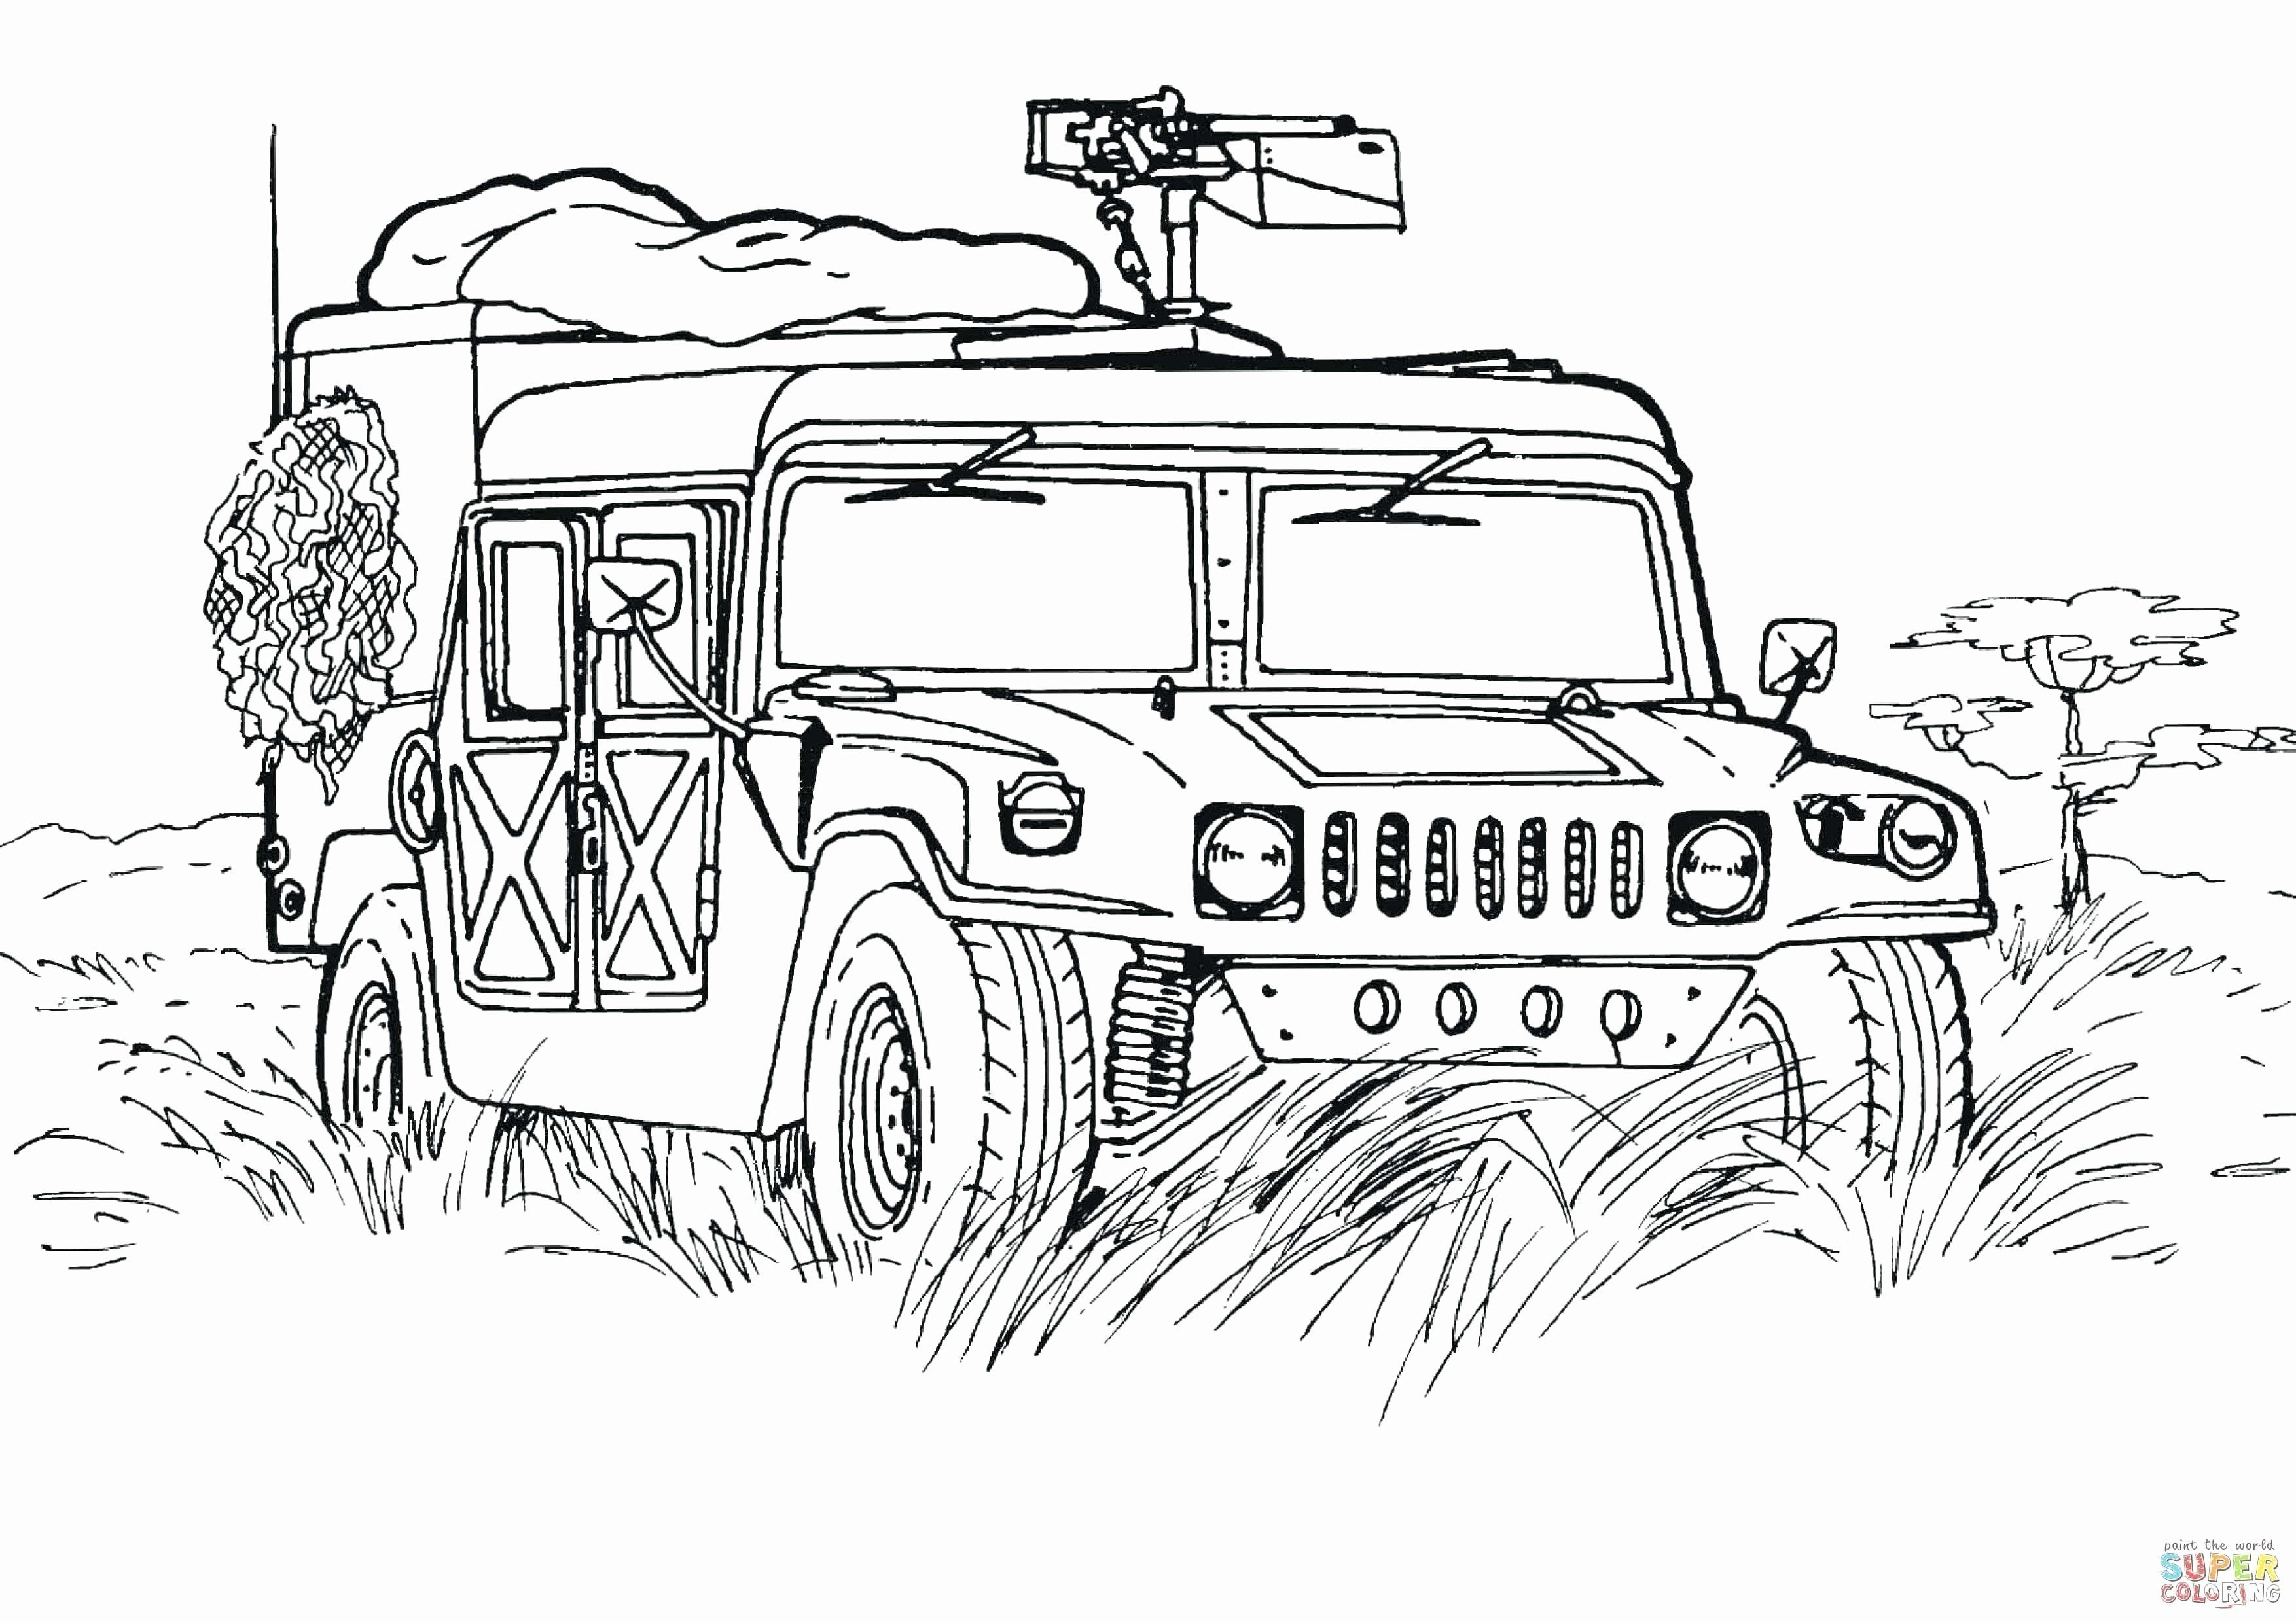 Free Coloring Pages Military Vehicles Elegant Printable Coloring Pages Army Tanks Outpo In 2020 Monster Truck Coloring Pages Truck Coloring Pages Cars Coloring Pages